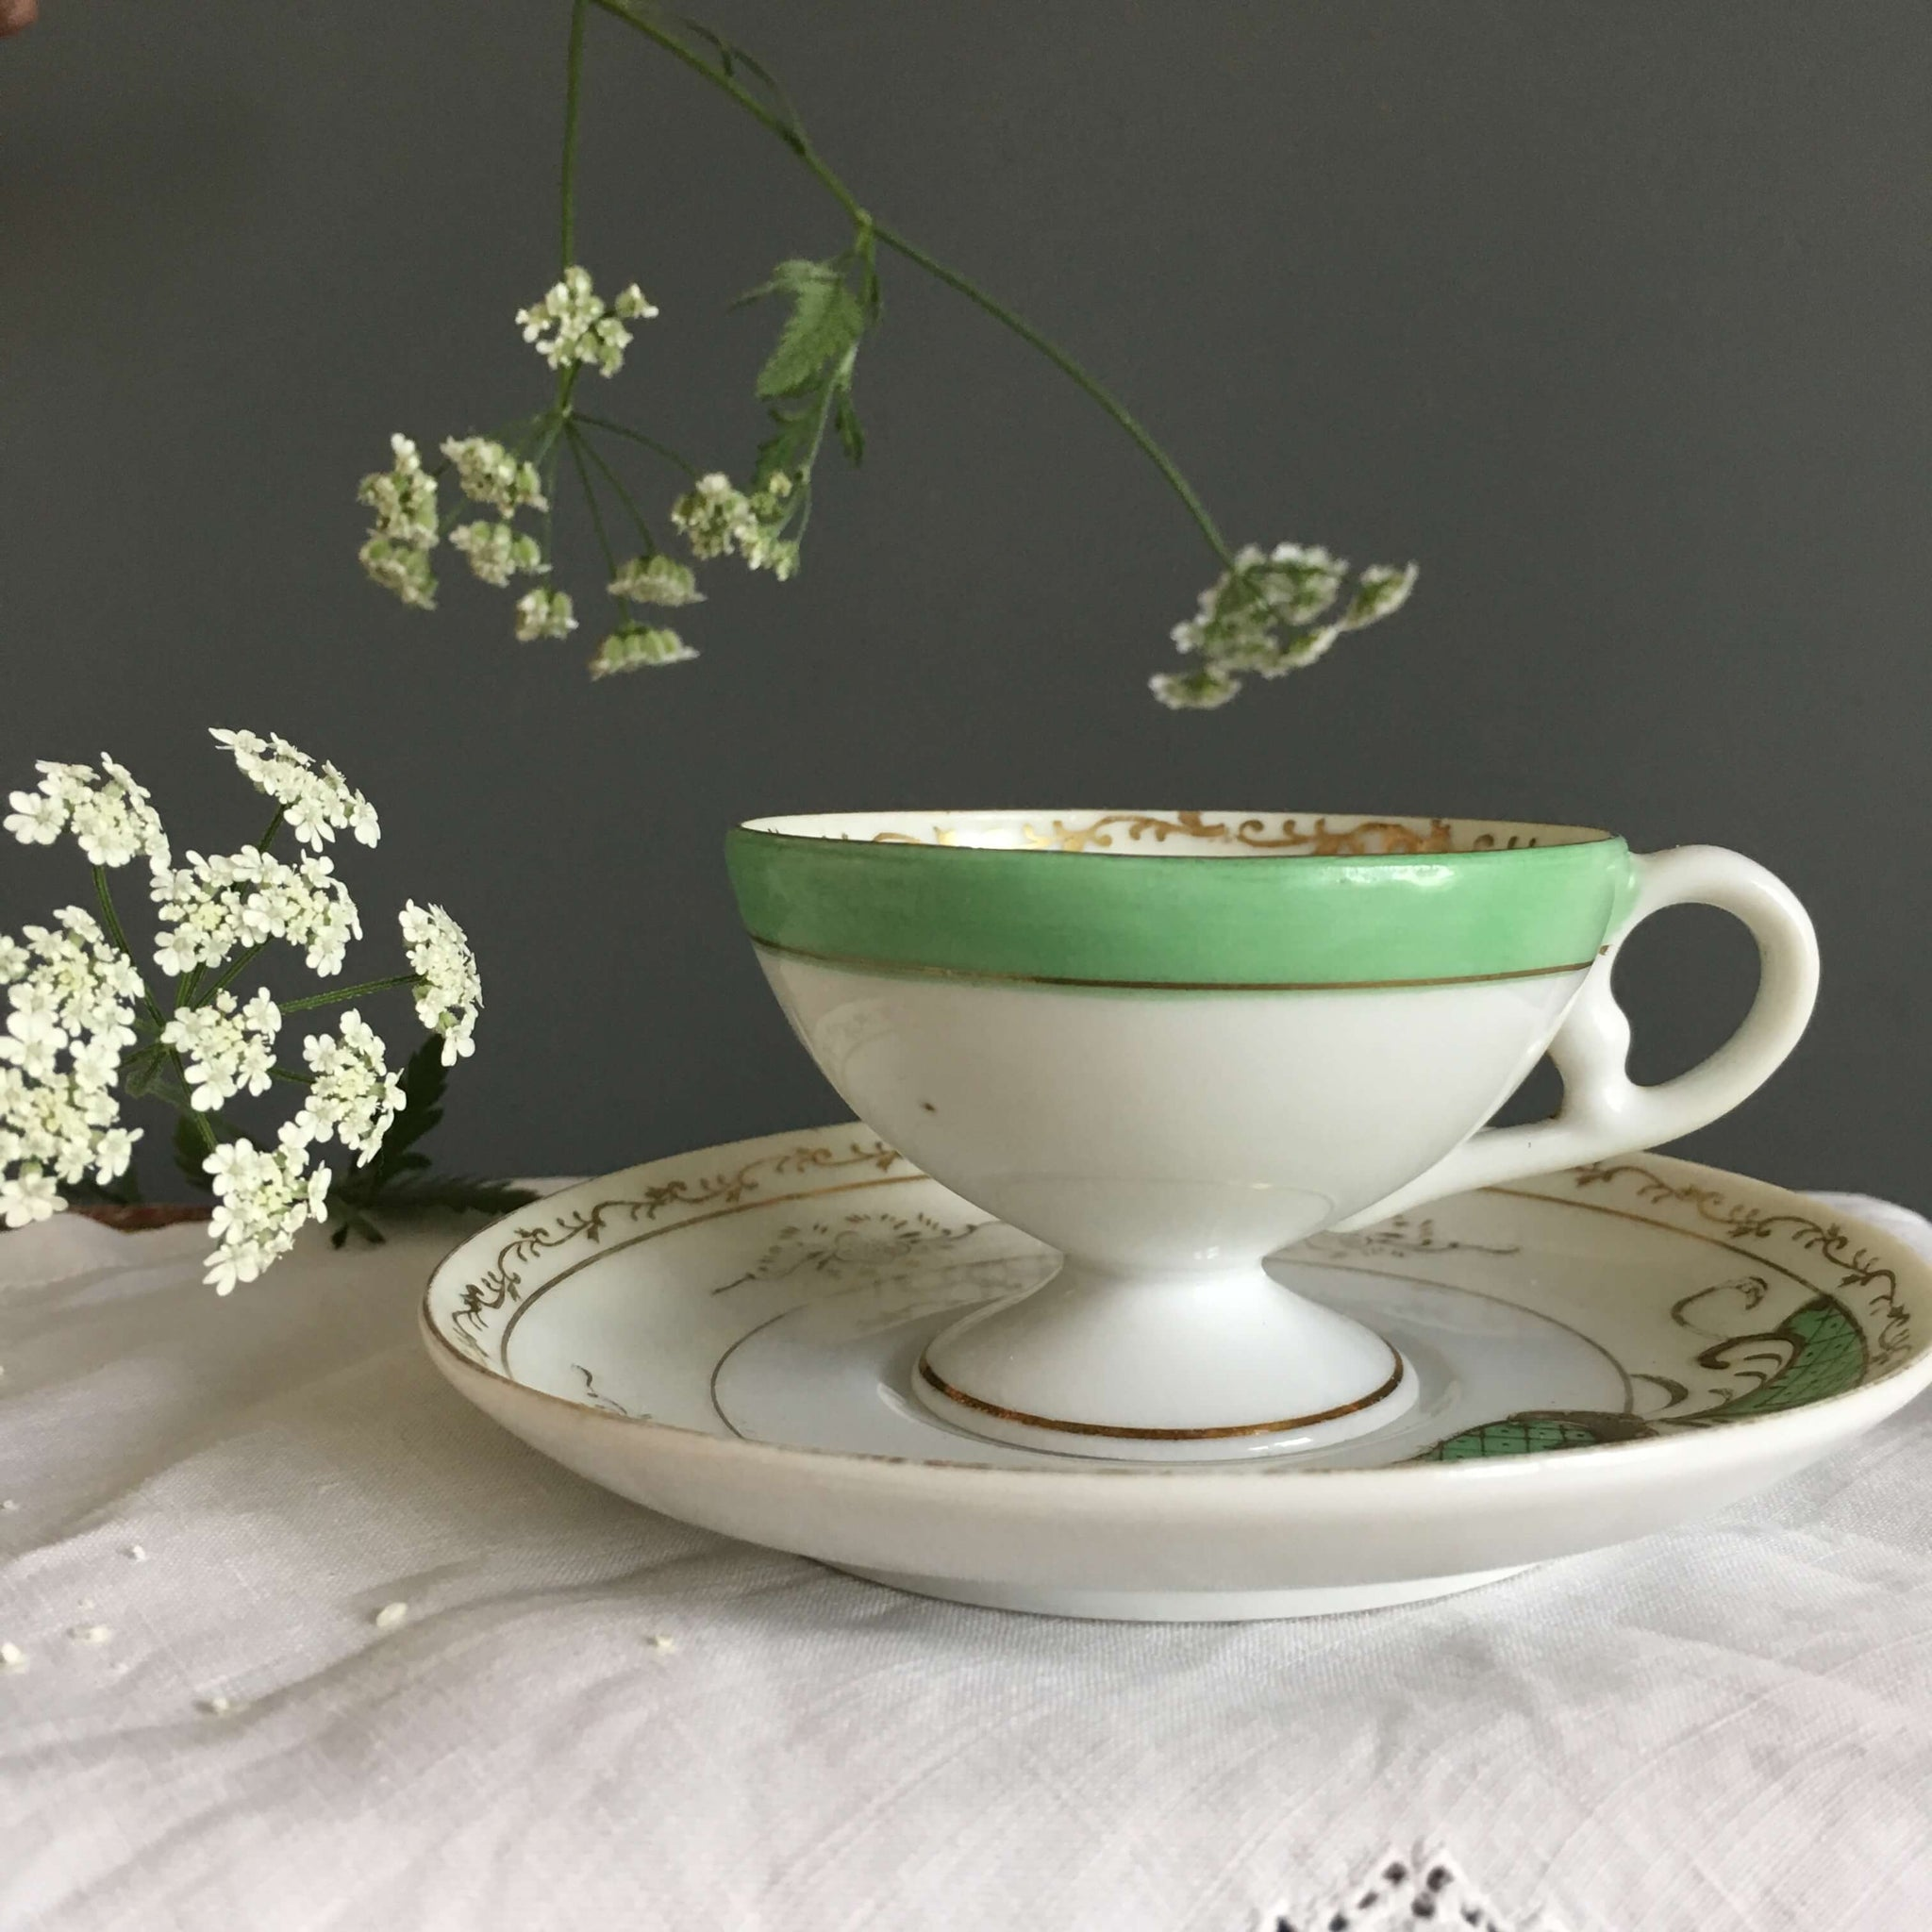 Vintage Royal Sealy Demitasse Cup & Saucer - Made in Occupied Japan circa 1945-1952 - Green and Gold